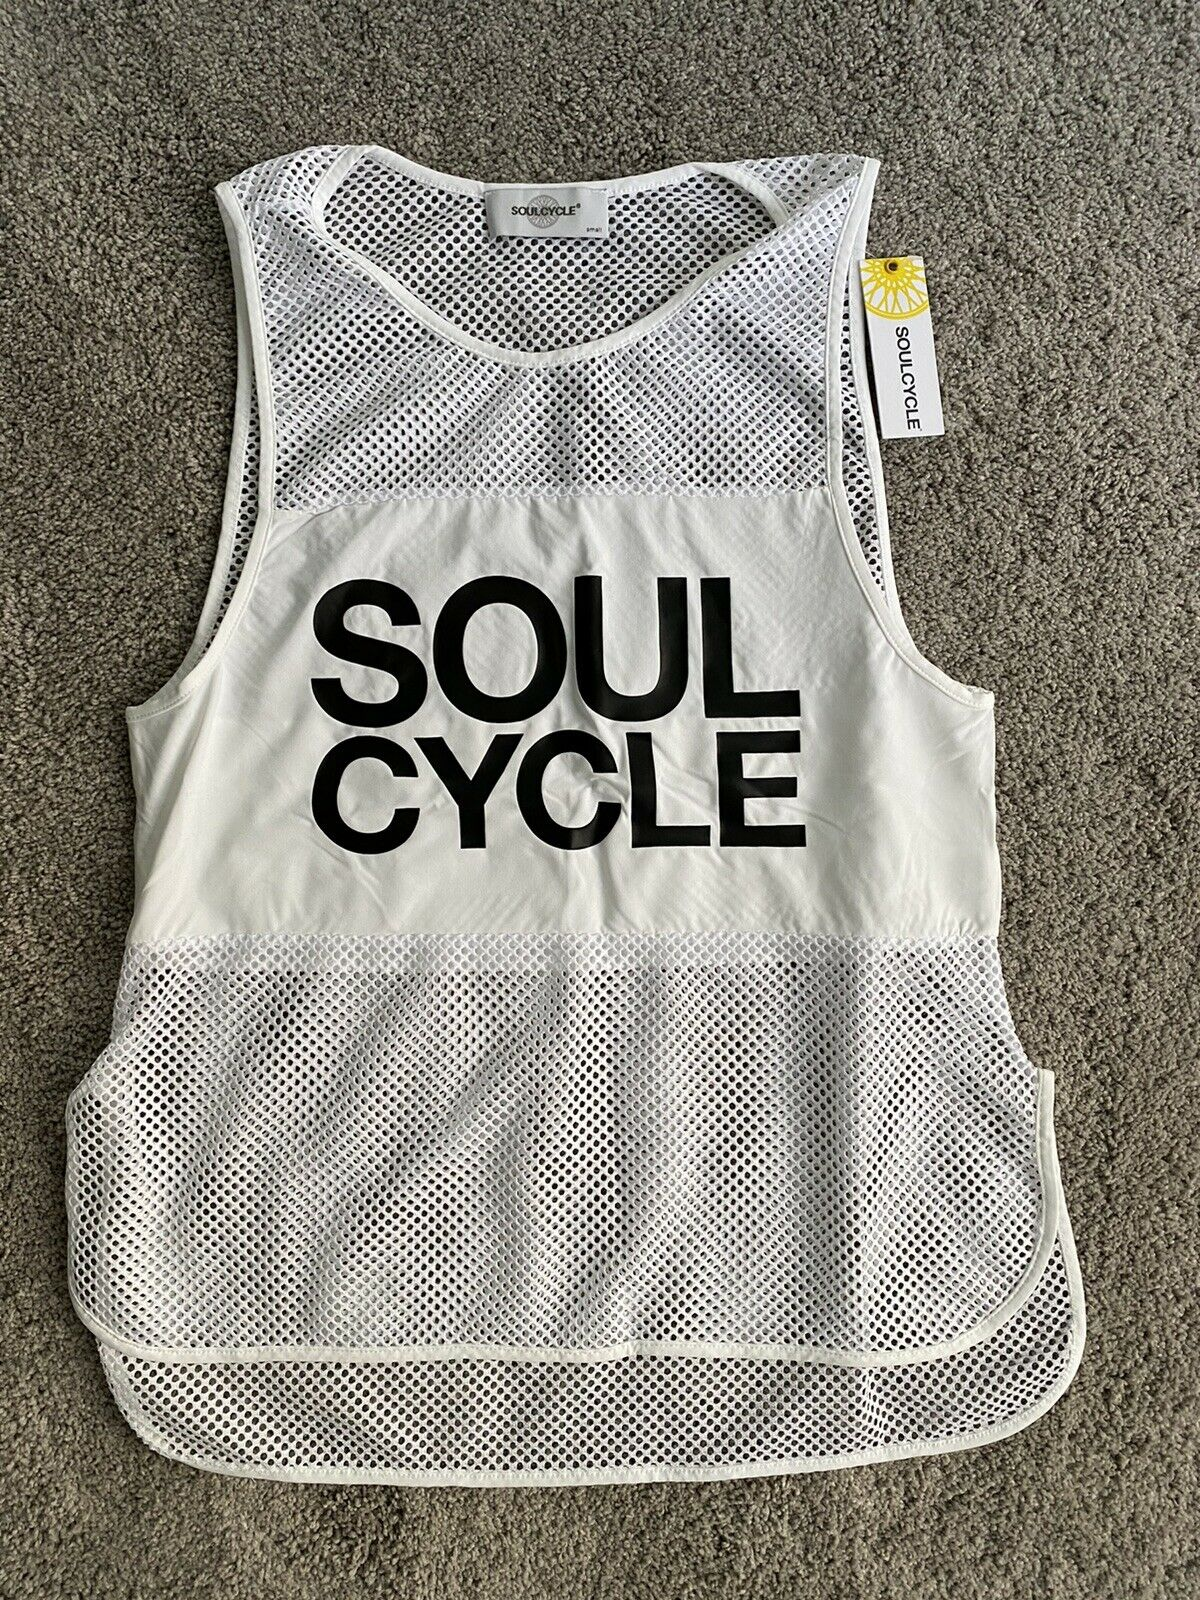 Soulcycle Ella Vest Tank Top White Size Small NWT